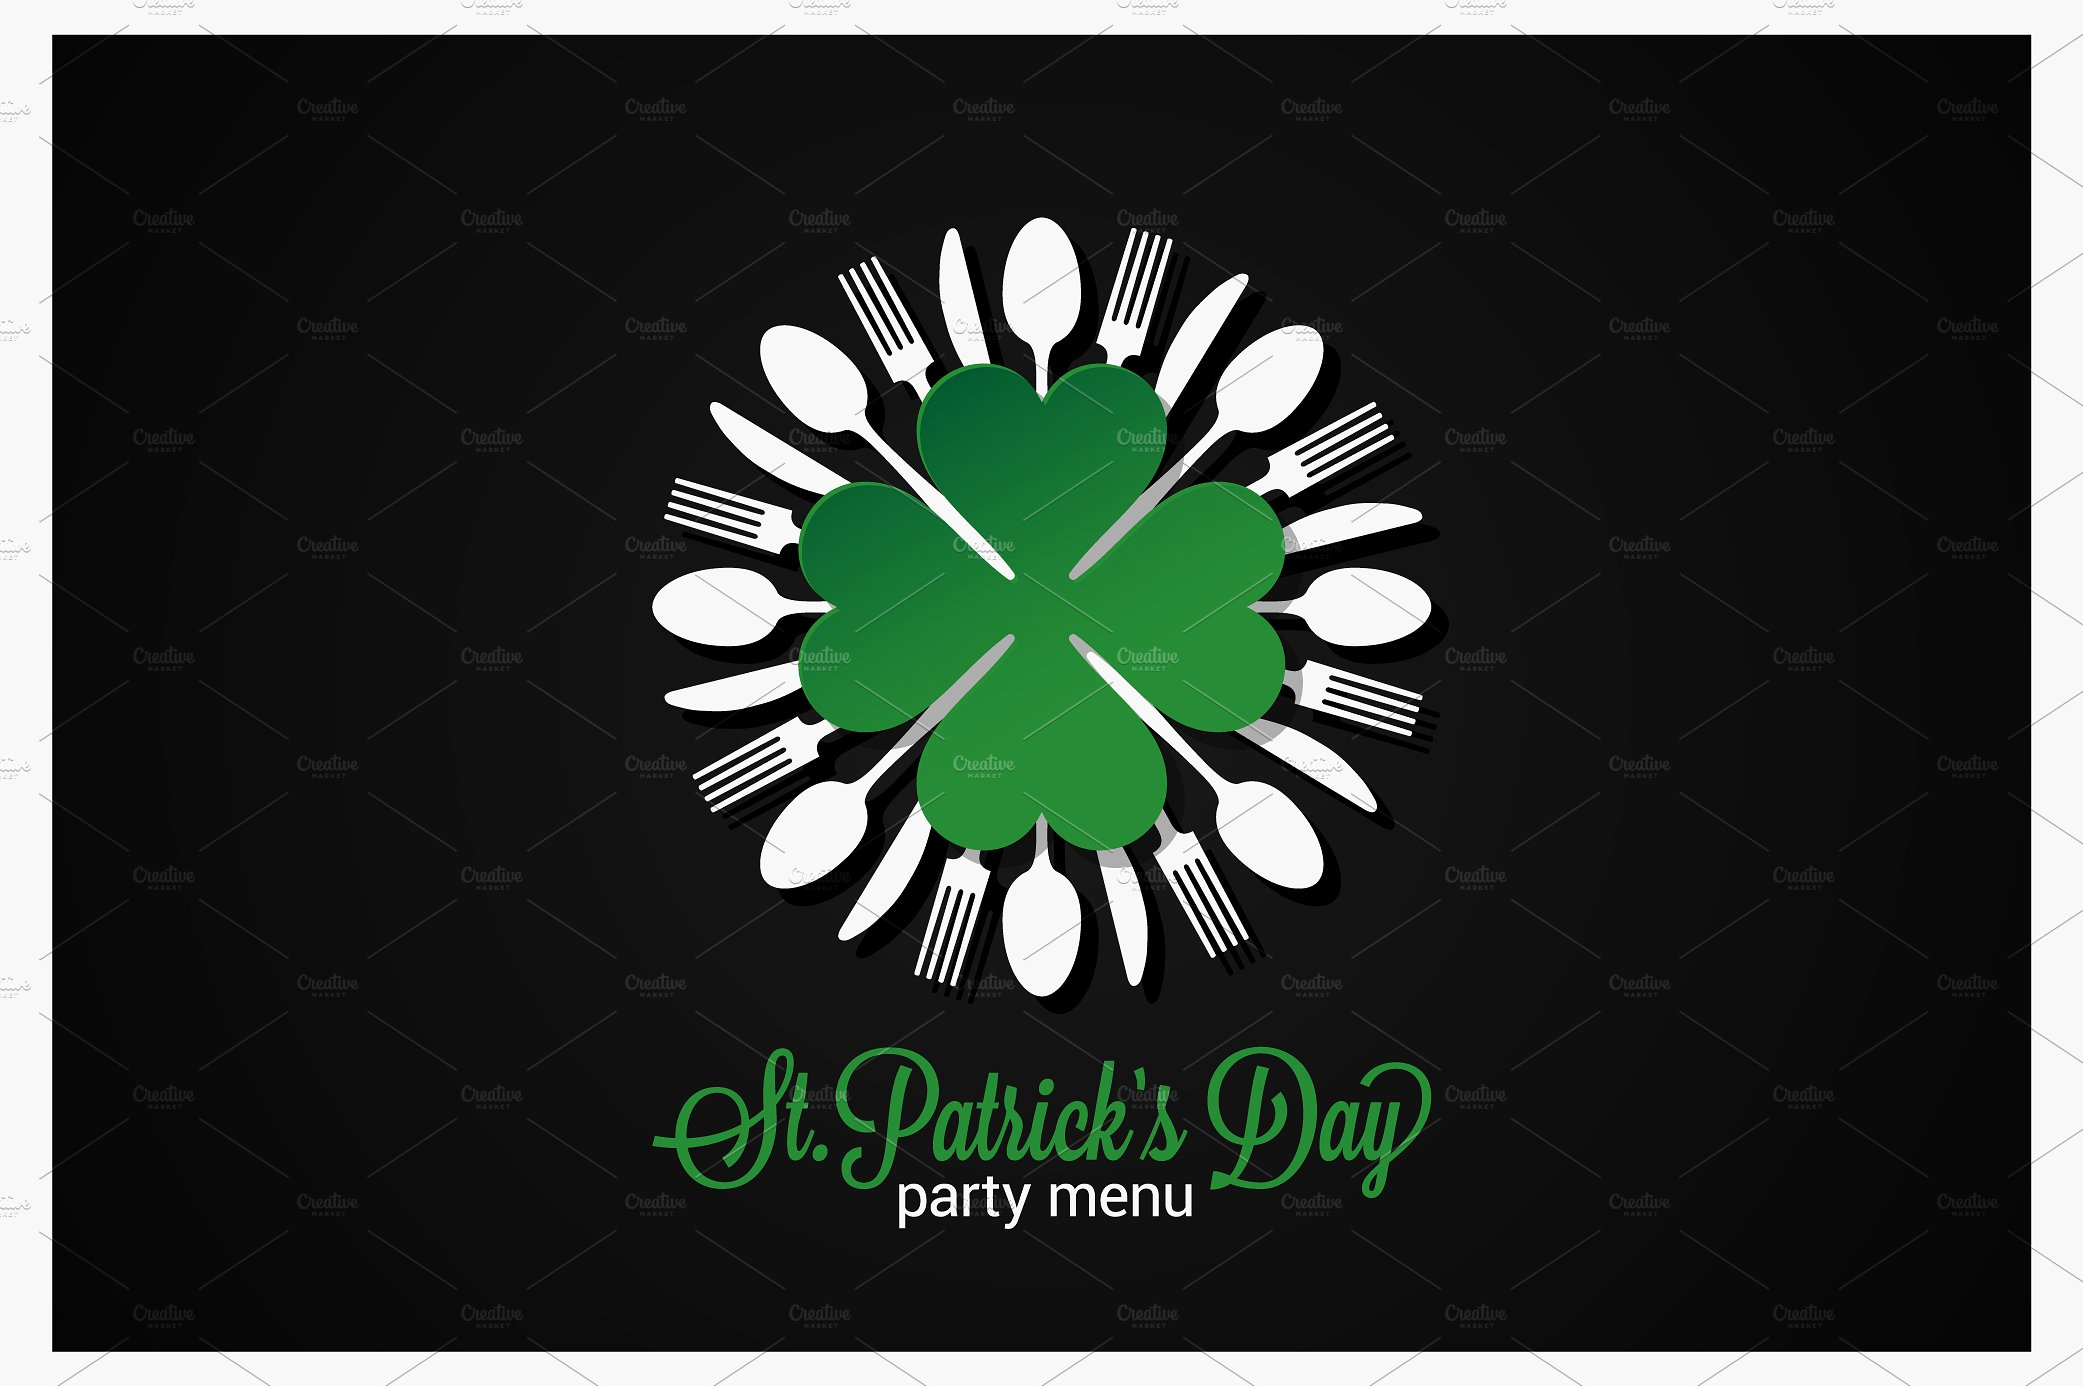 utensils and clover st patrick menu example